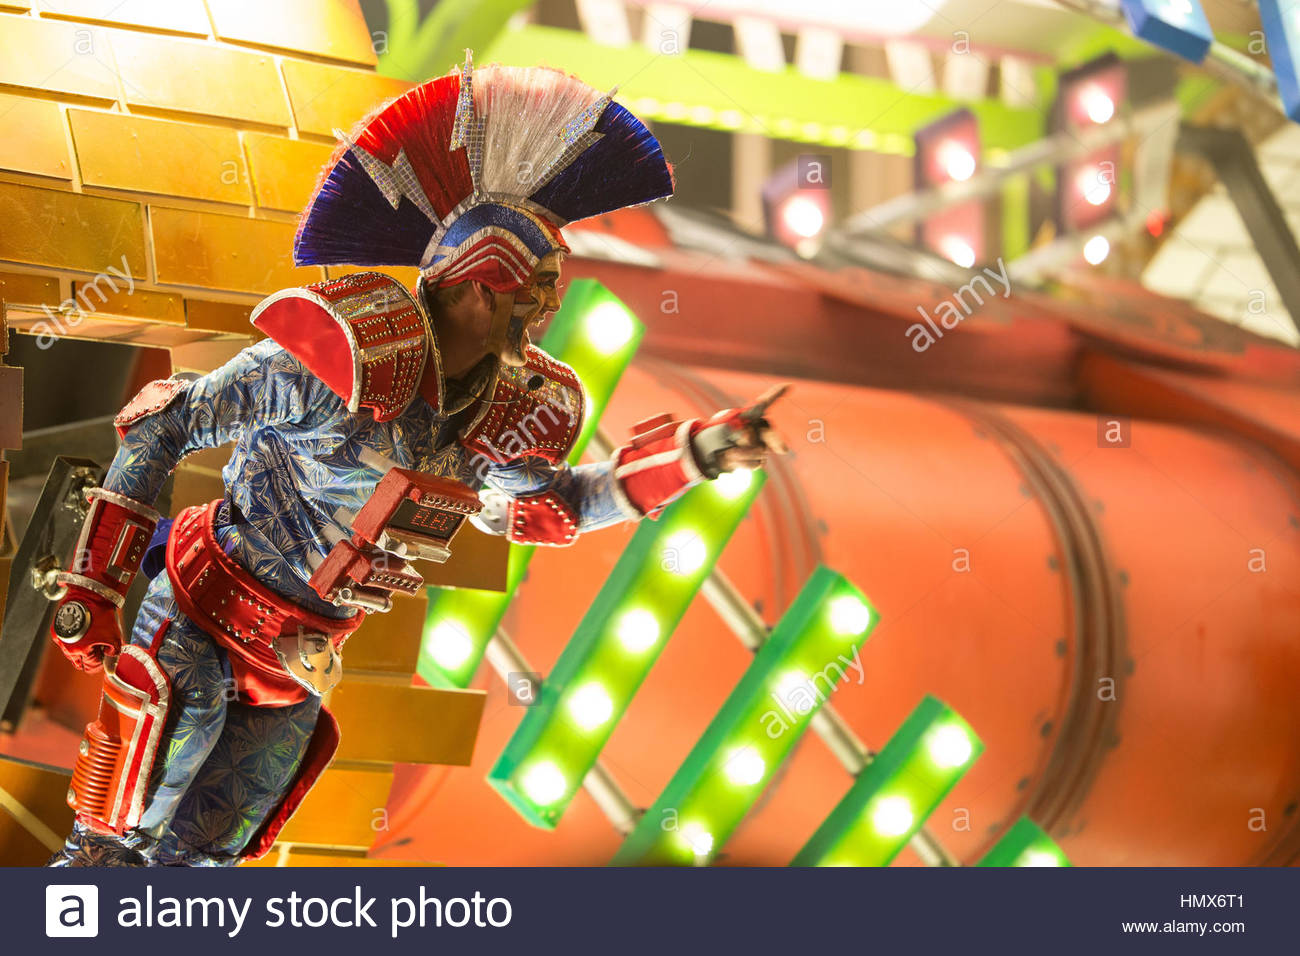 A single performer on Harlequin Carnival Club's Underground Express float at the Taunton Carnival, 2016. - Stock Image